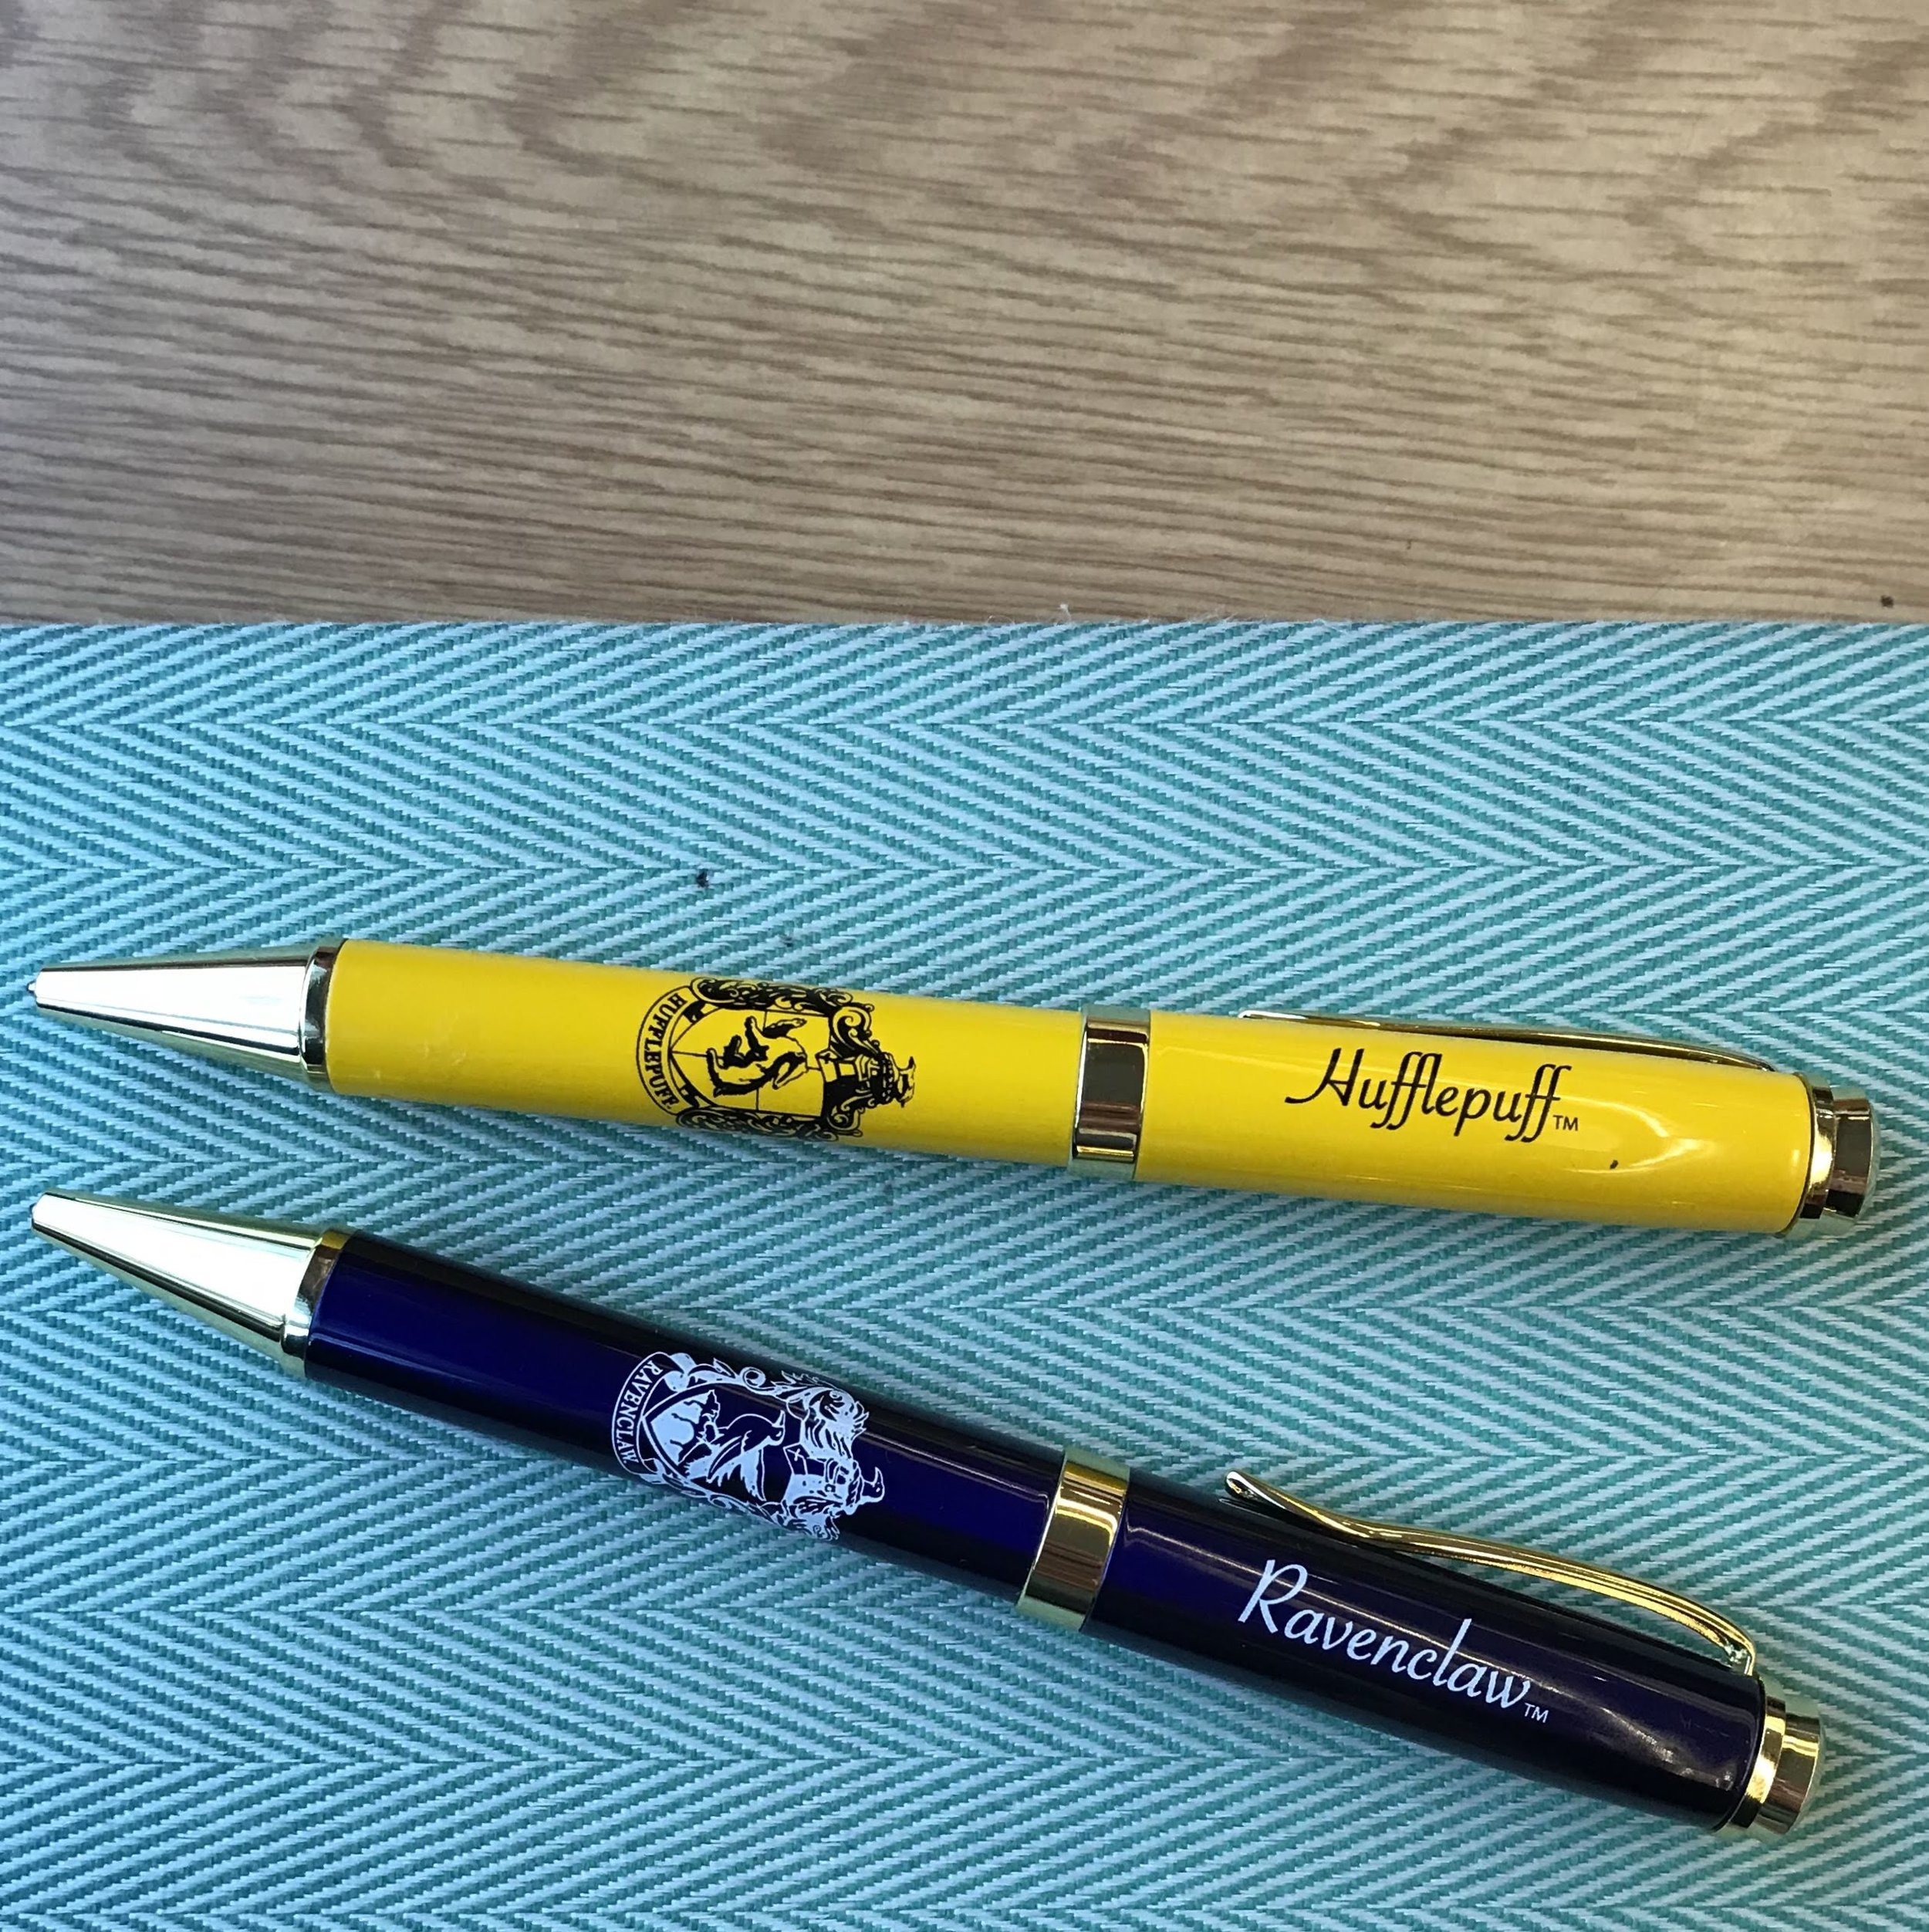 pens for each of our houses